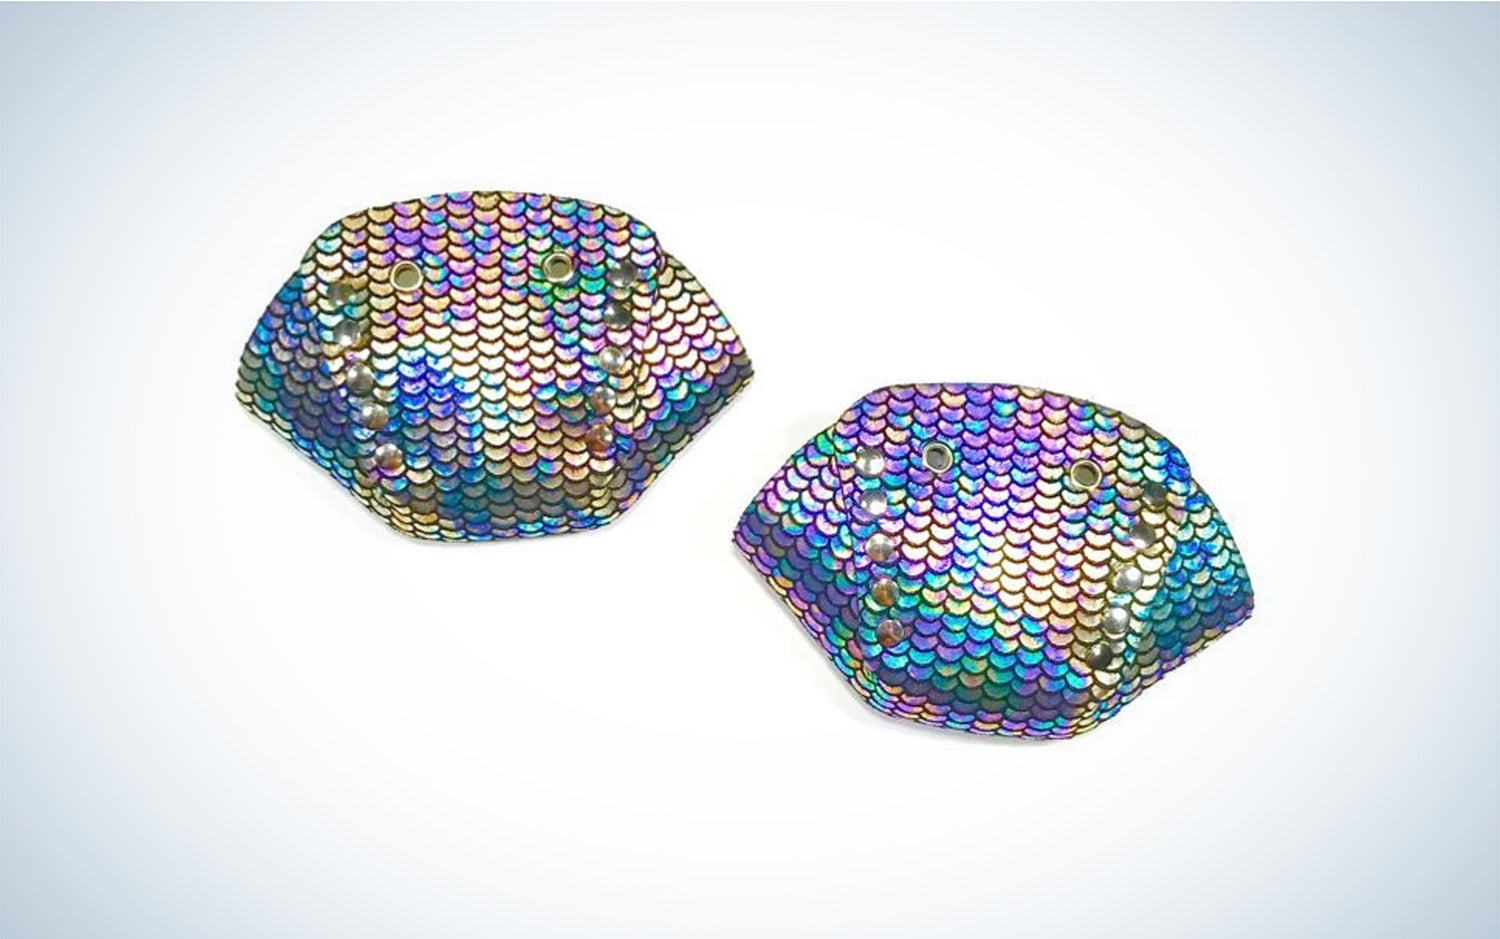 A pair of curved fabric toe-covers in holographic purple print